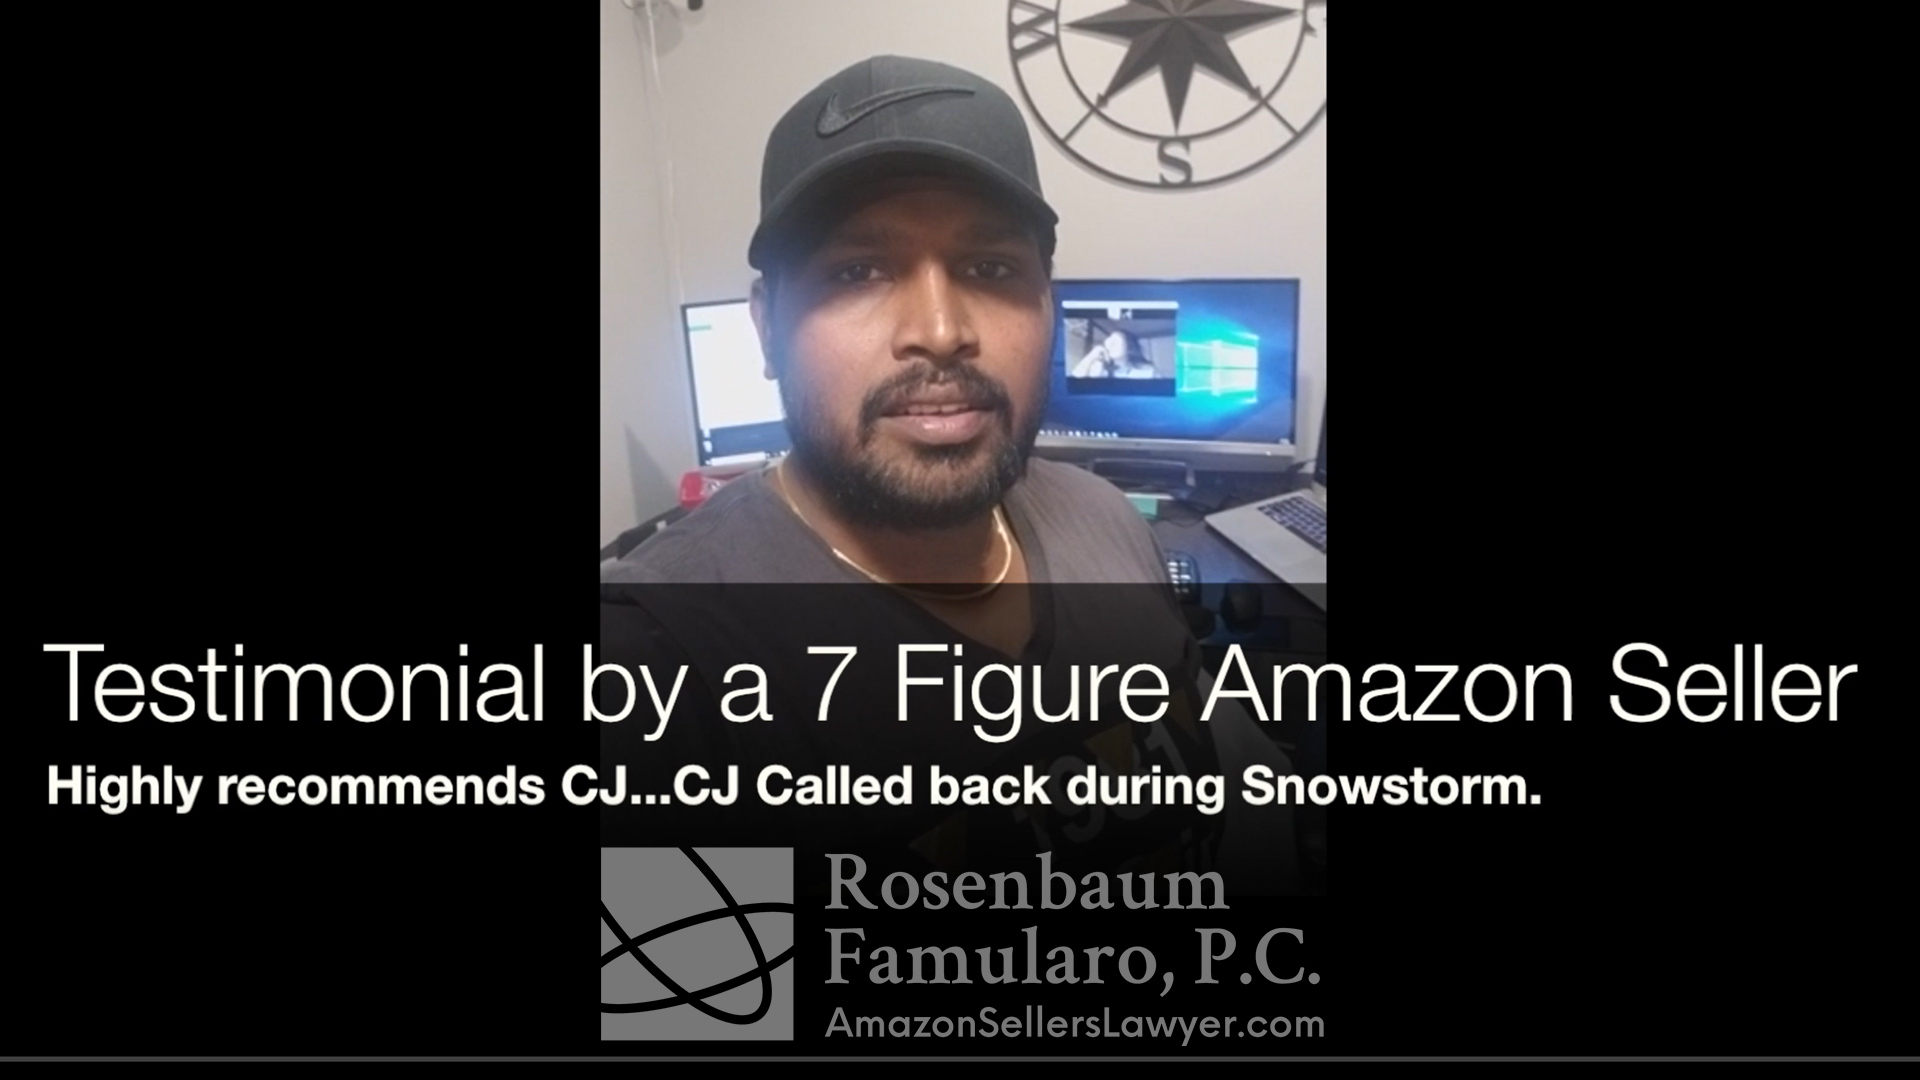 testimonial - CJ Available to Help Amazon Sellers 7 Days a Week